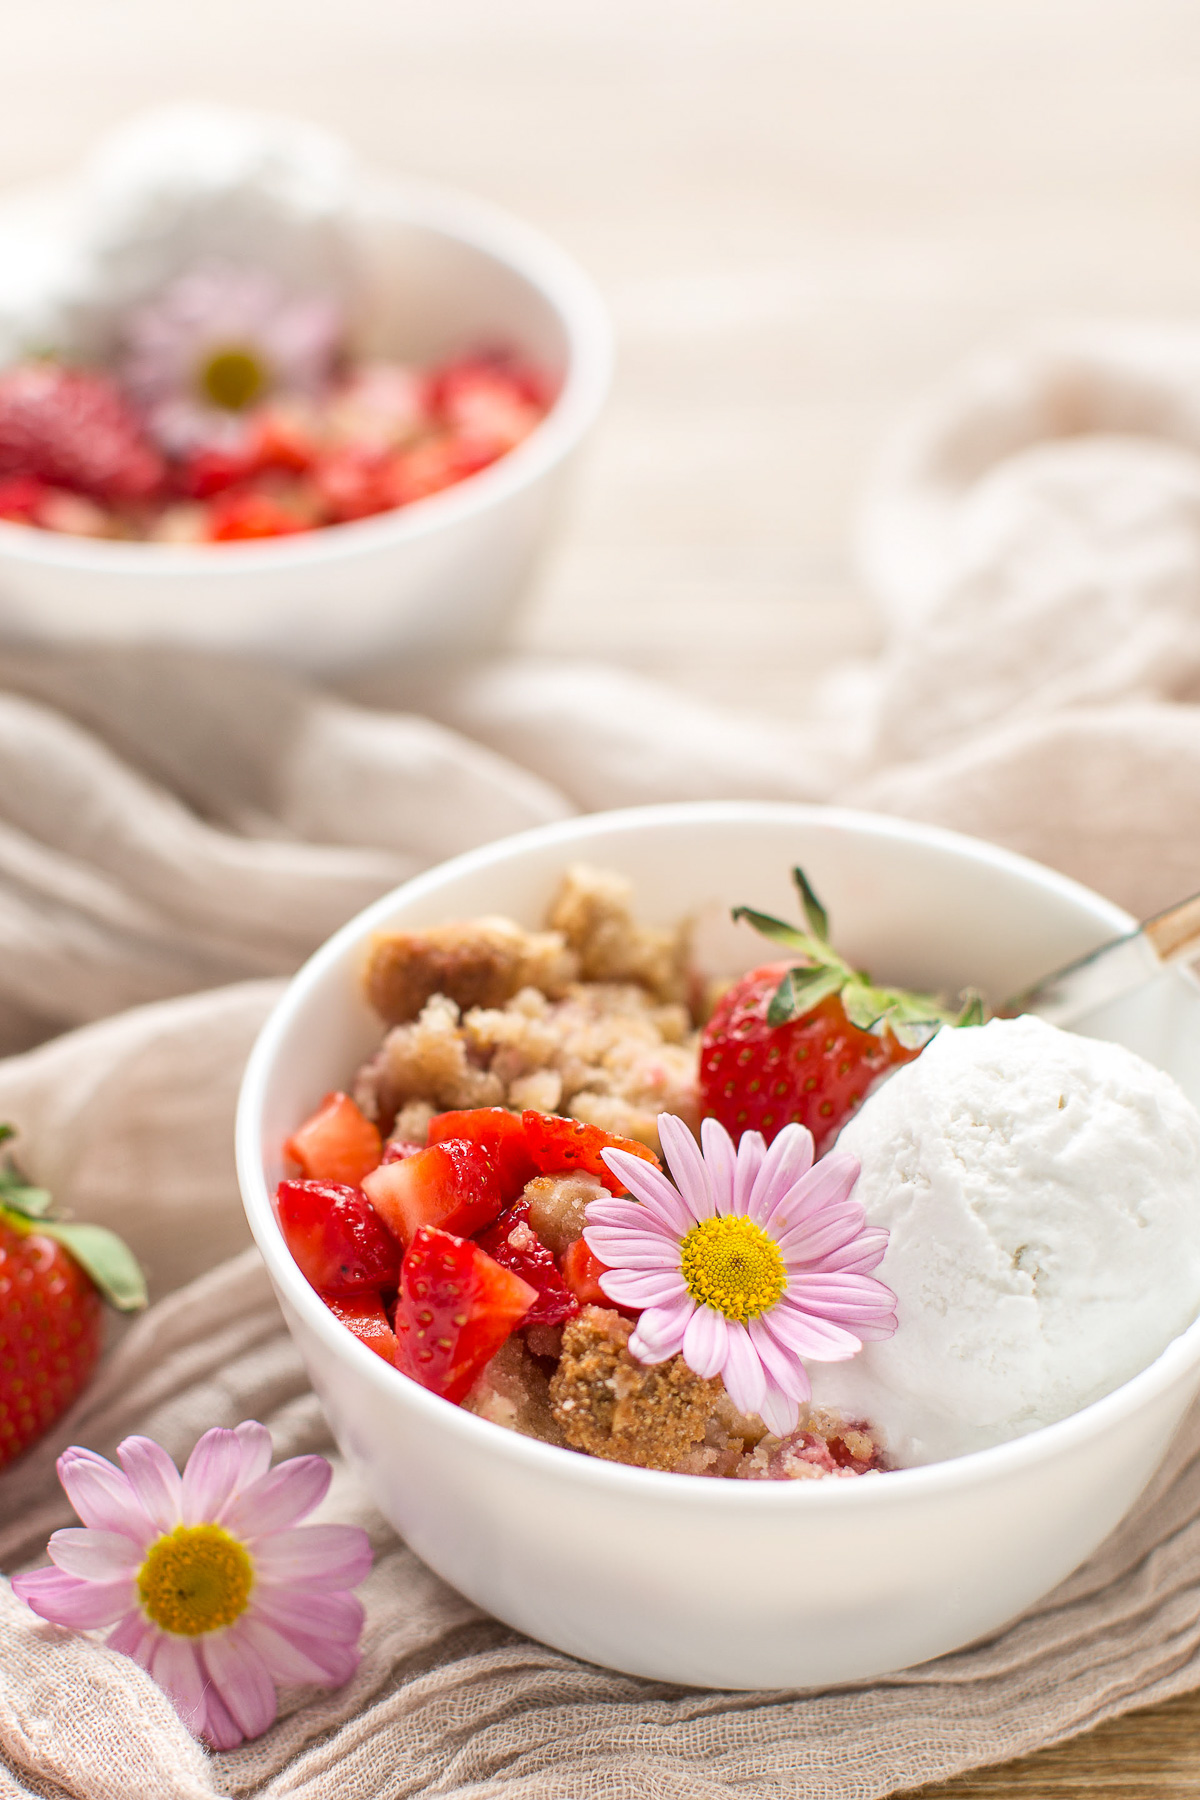 crumble di fragole e rabarbaro vegan senza glutine con mandorle e nocciole - #vegan glutenfree rhubarb strawberry crisp with almonds and hazelnuts